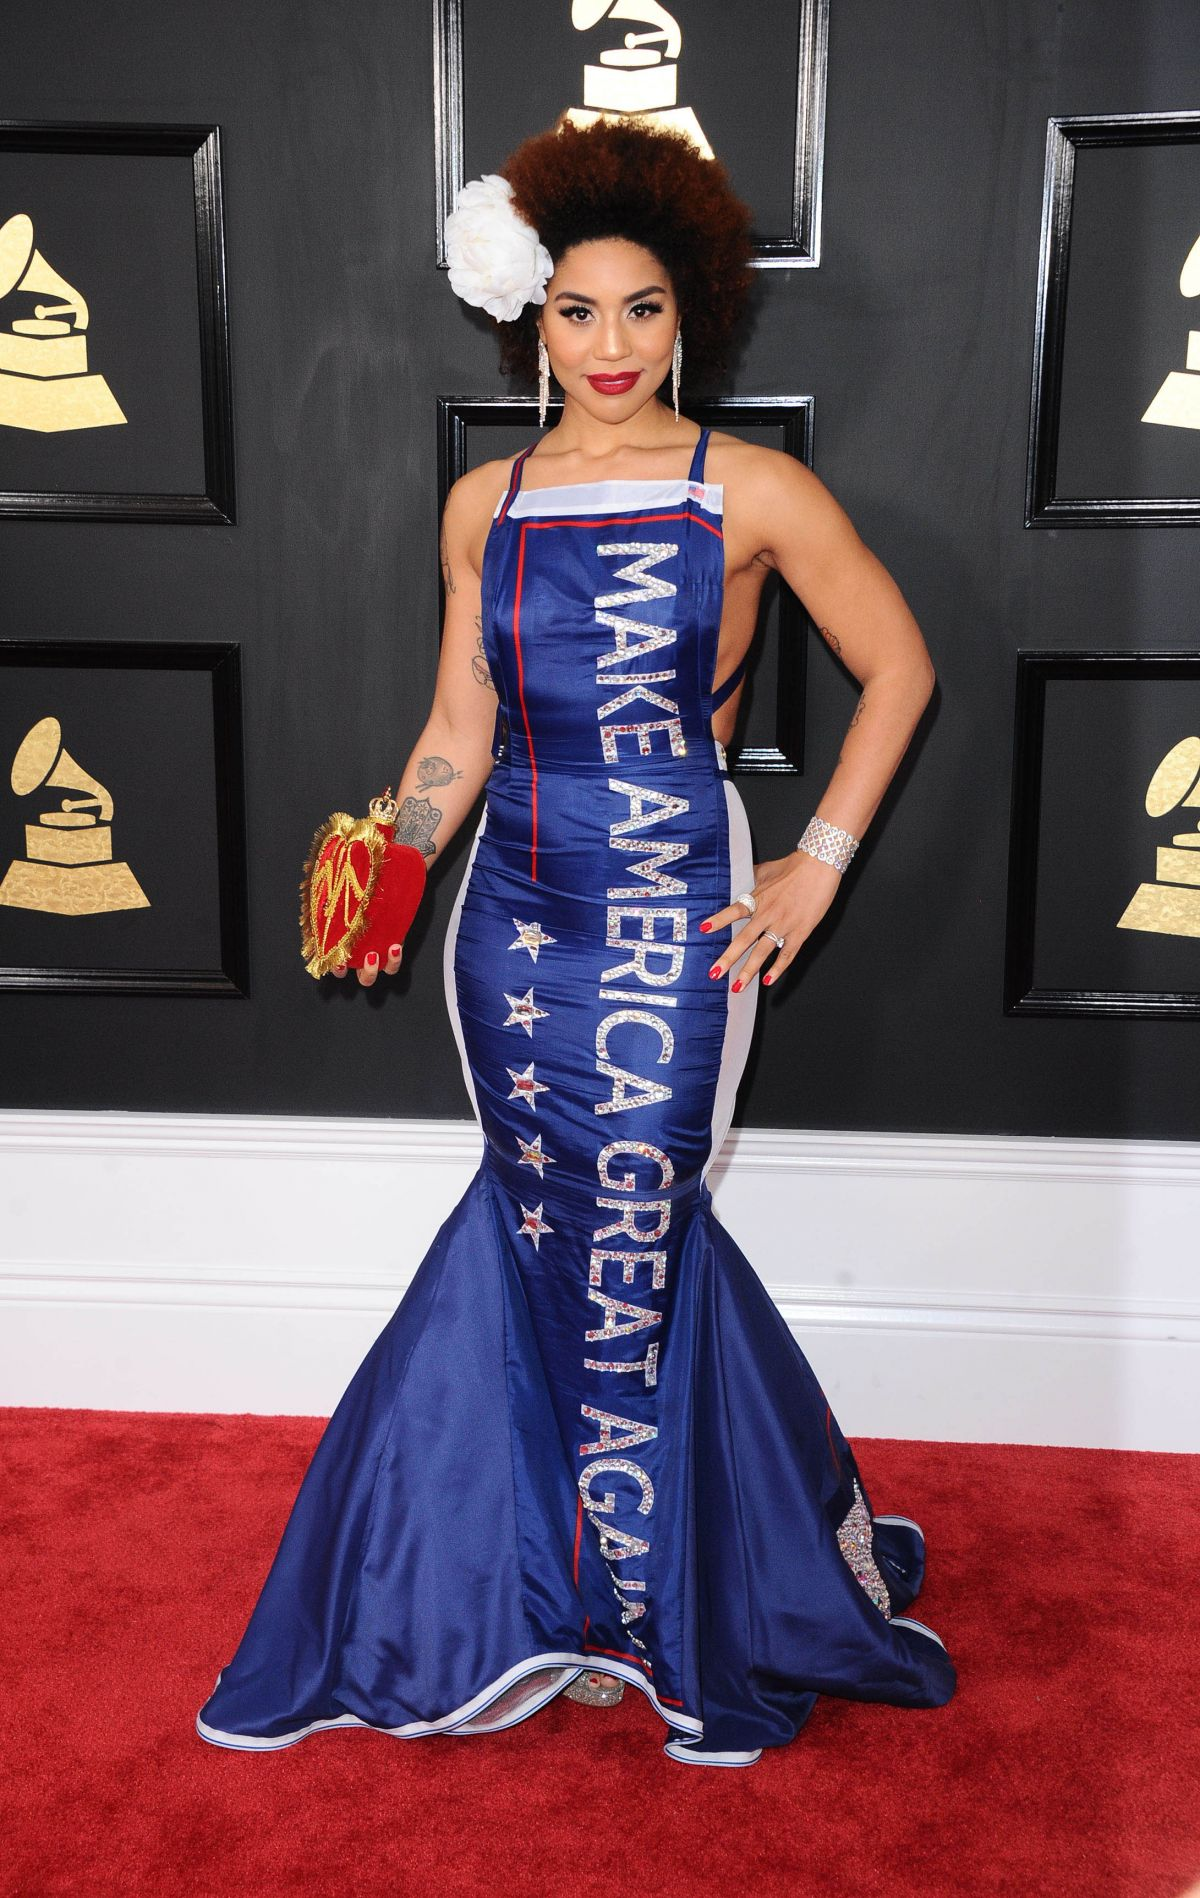 JOY VILLA at 59th Annual Grammy Awards in Los Angeles 02/12/2017